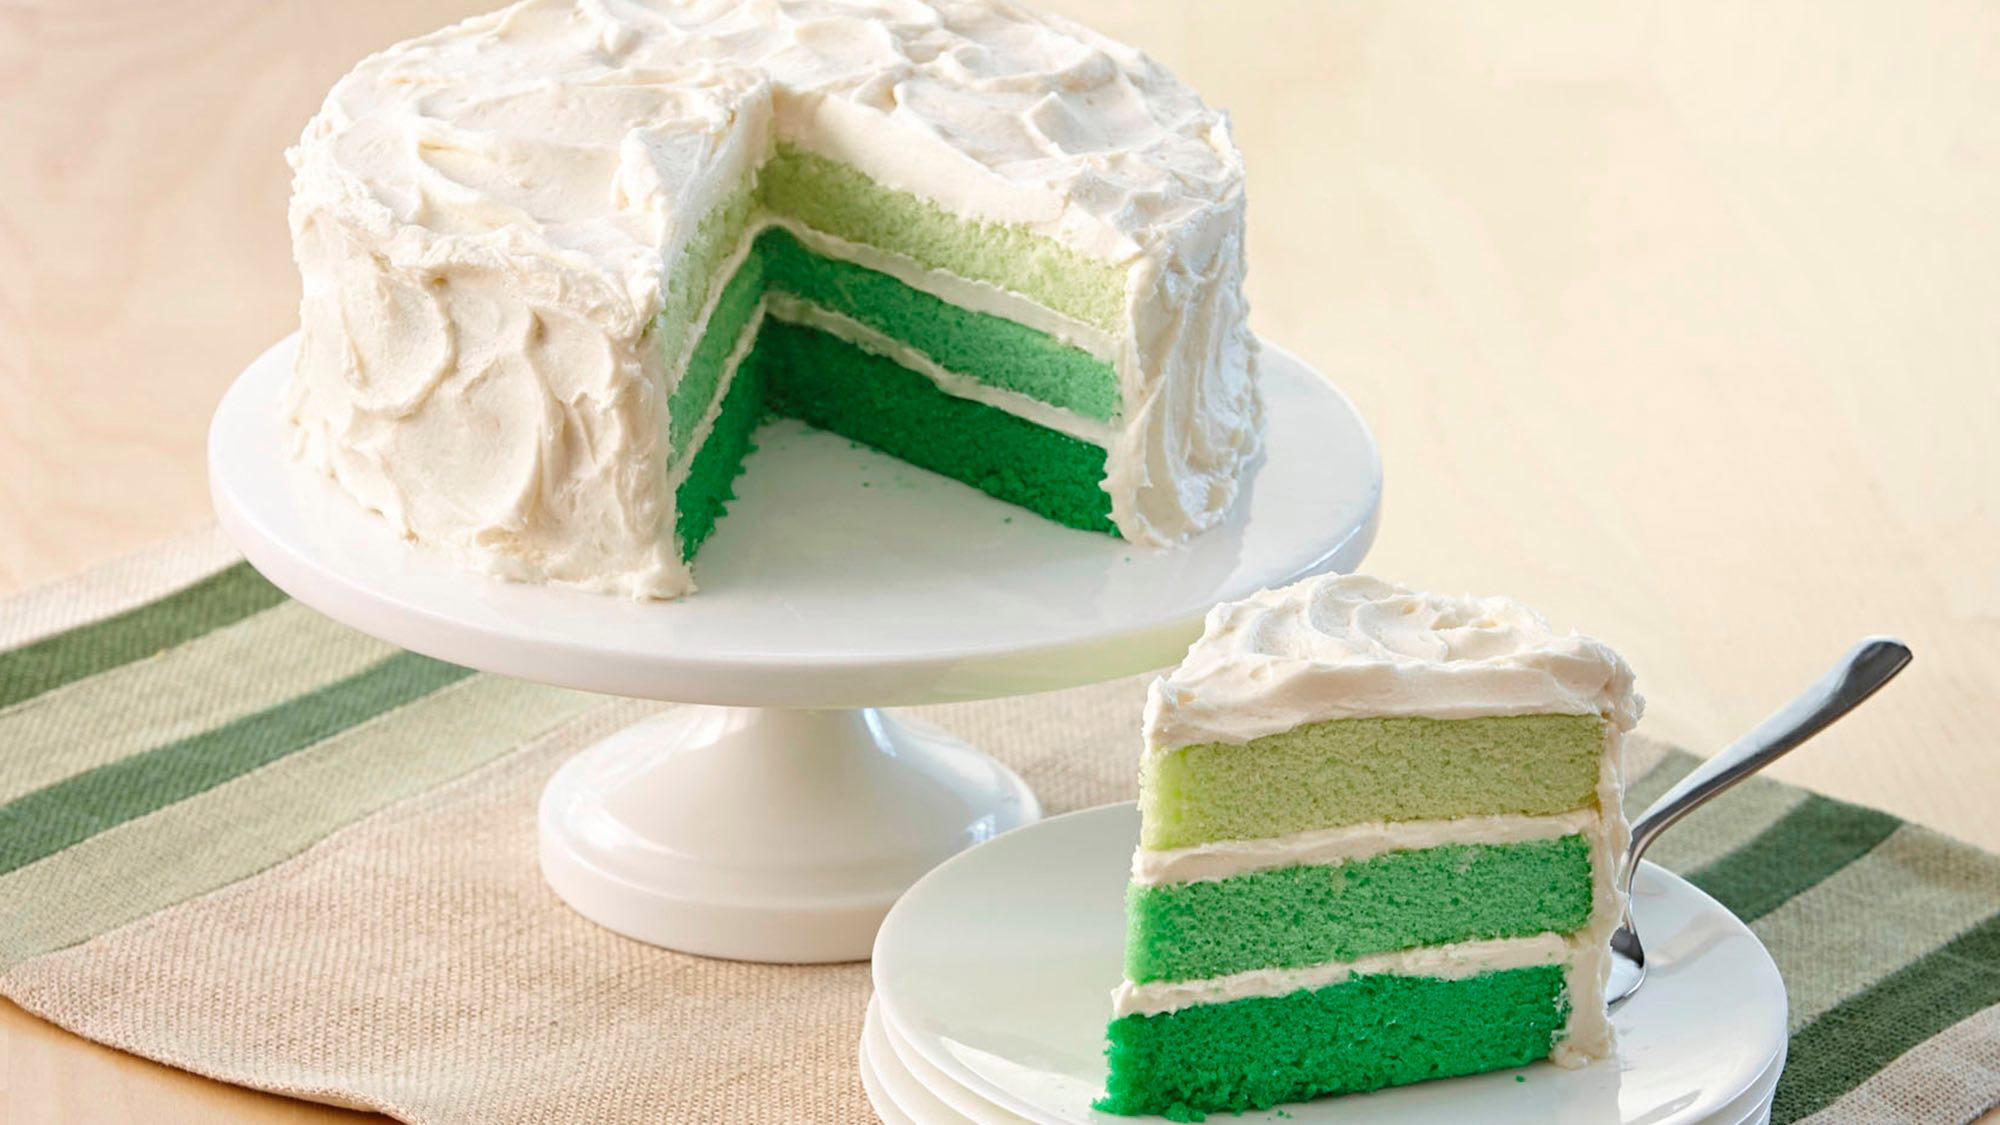 McCormick Ombre Cake